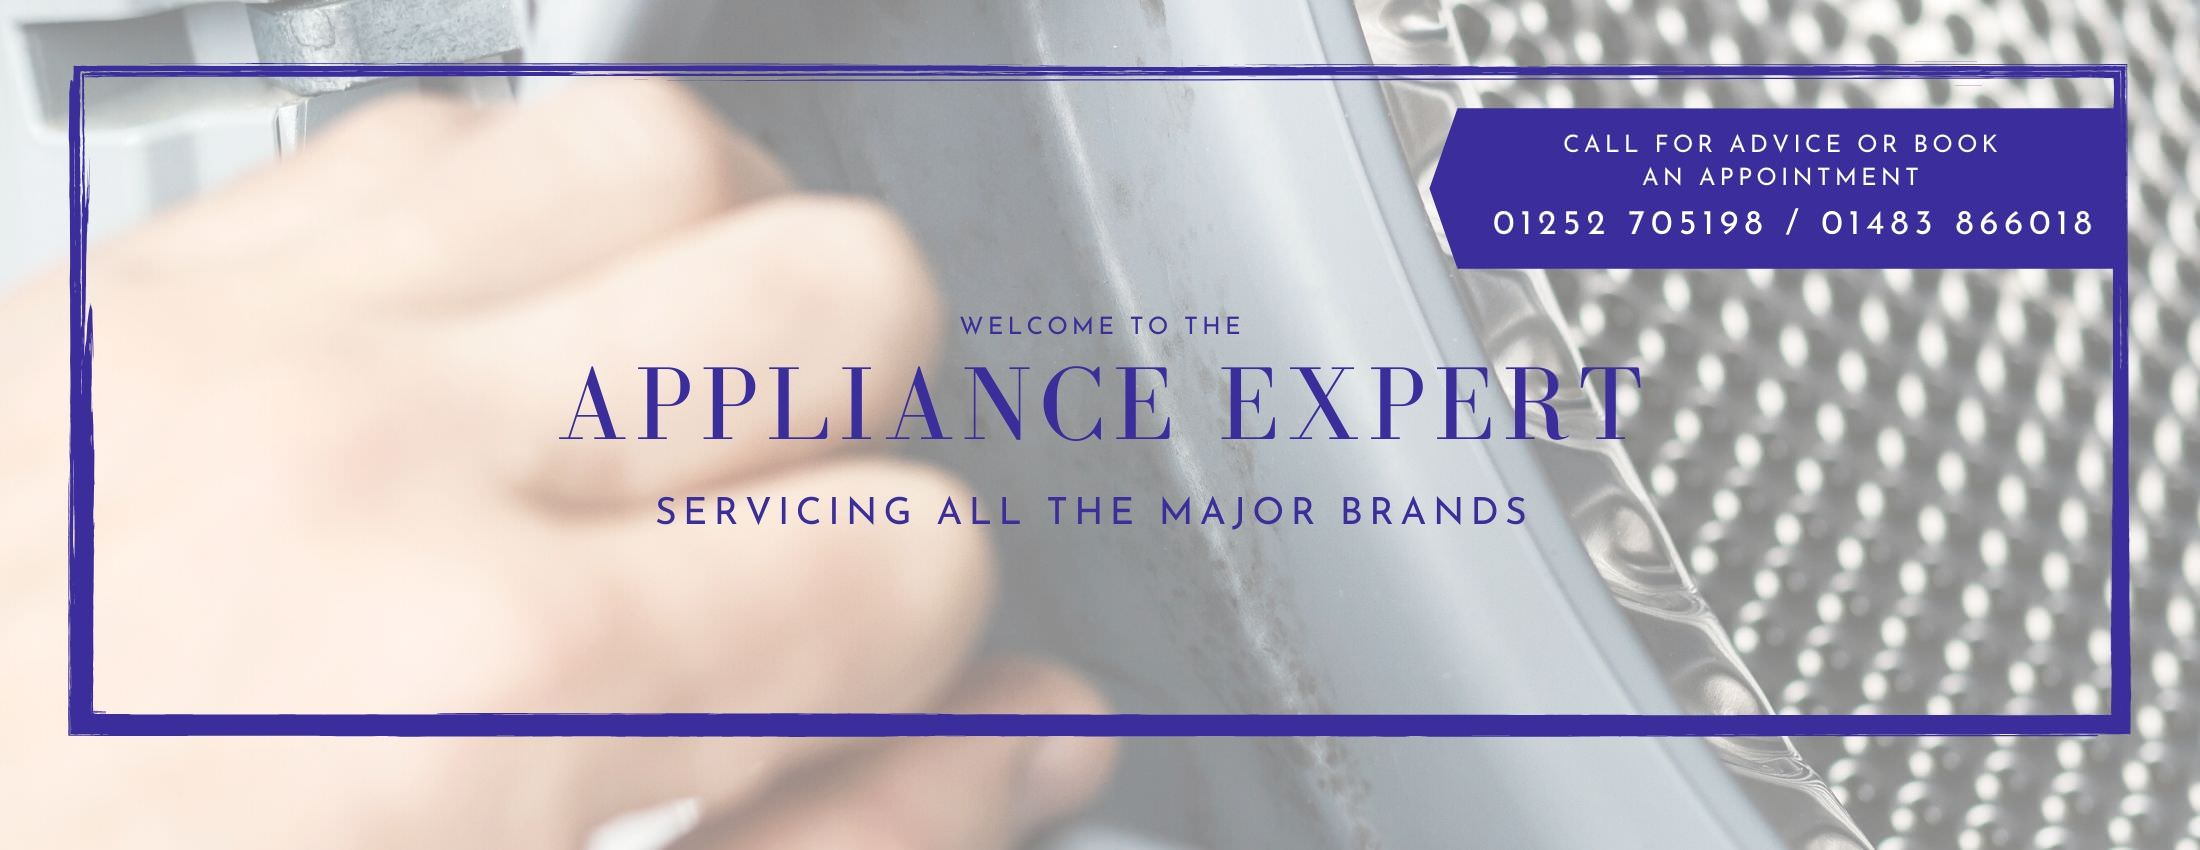 Appliance Expert Domestic Appliance Repair Services